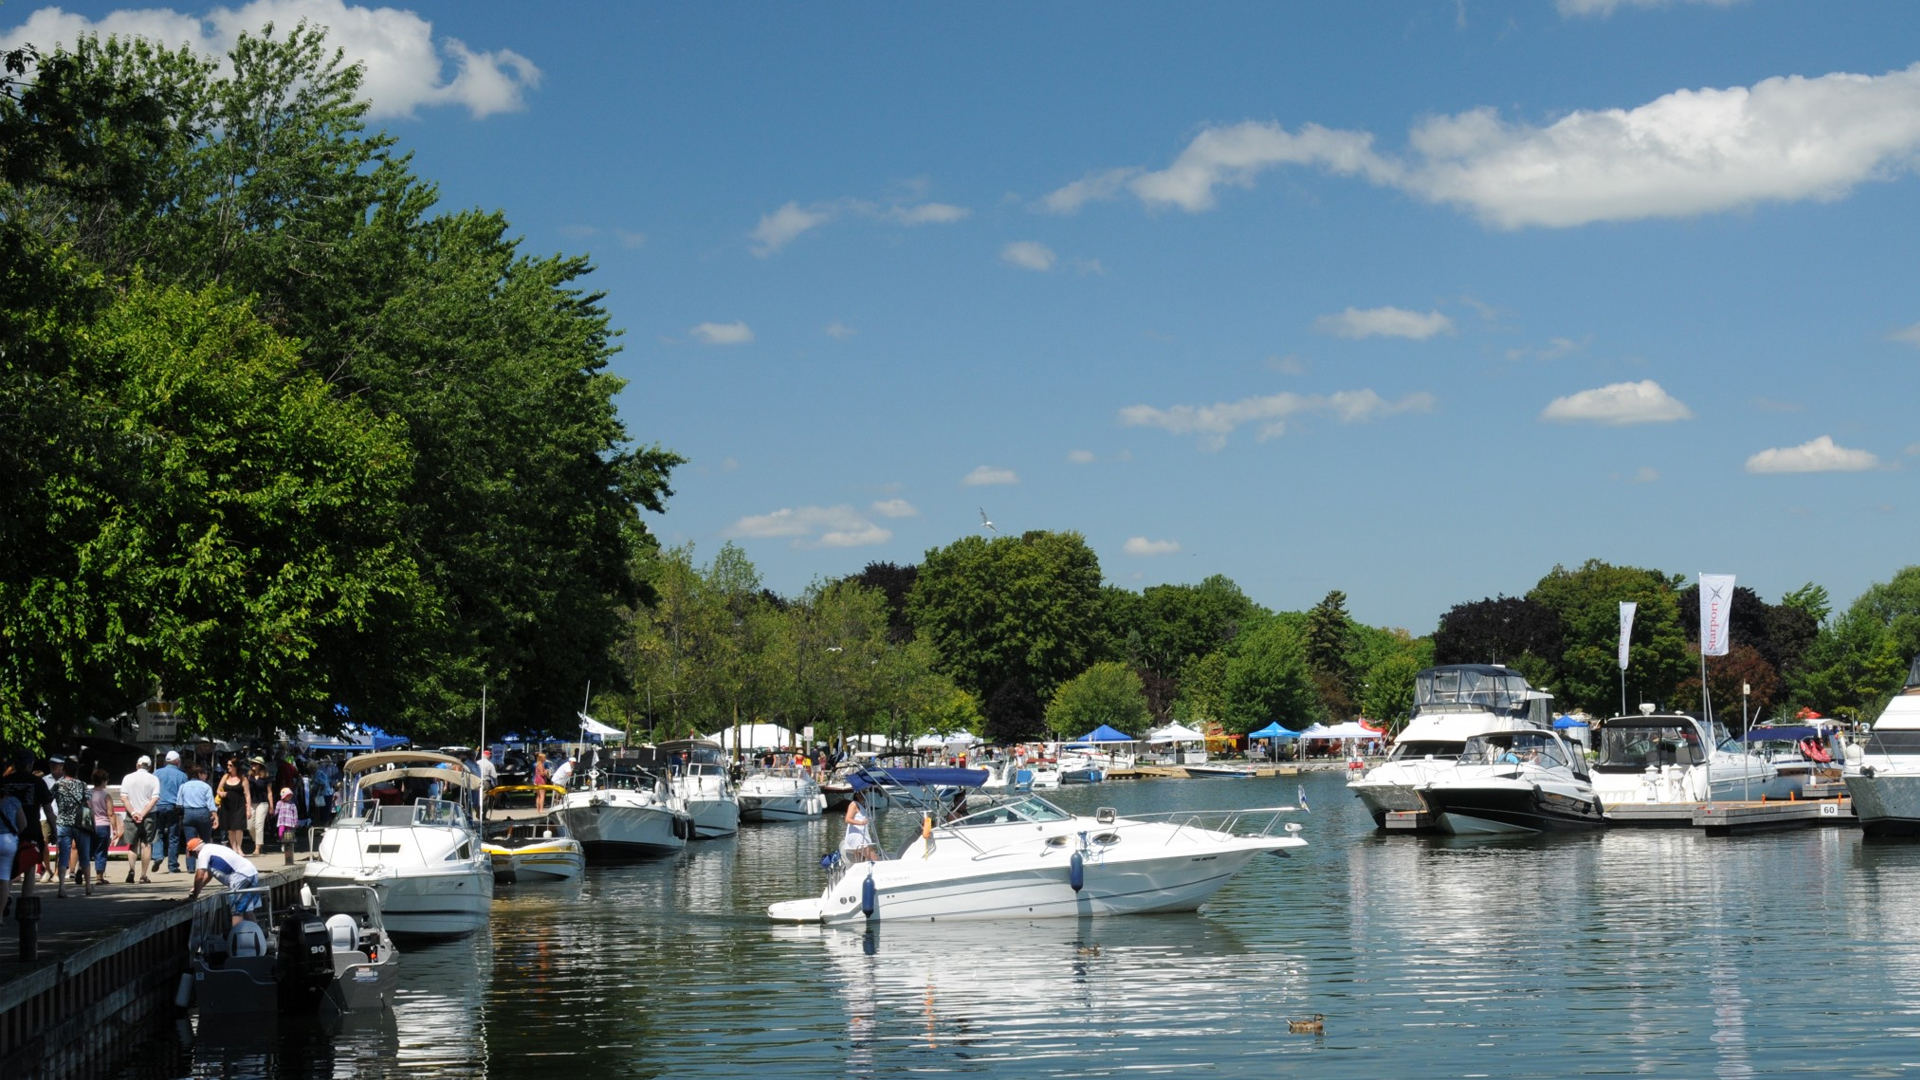 Orillia Waterfront Festival - August Events To Look Forward To